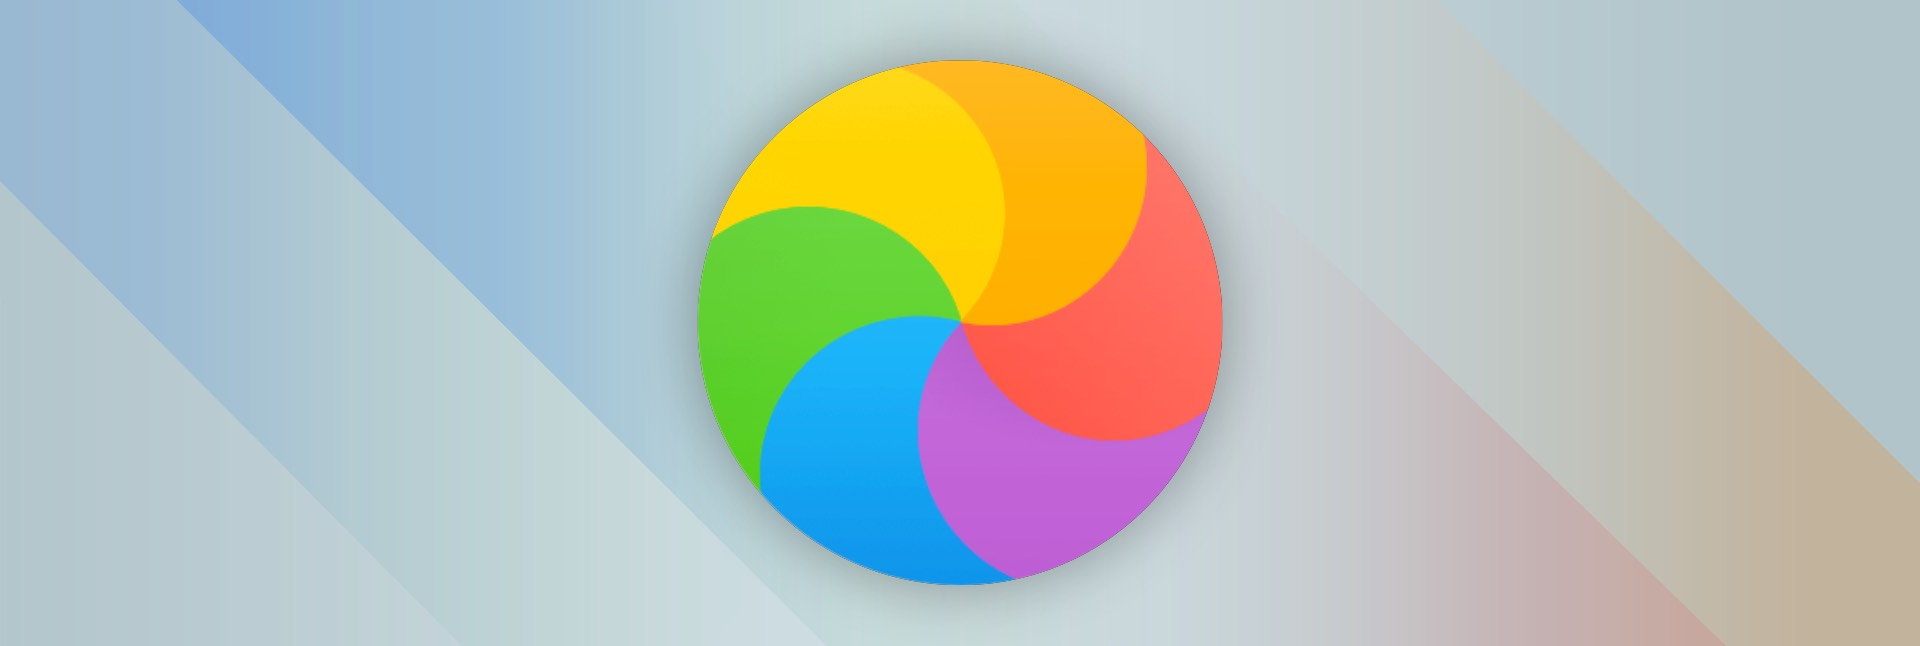 Not Too Many Wheels Spinning On These >> How To Stop The Spinning Color Wheel On A Mac